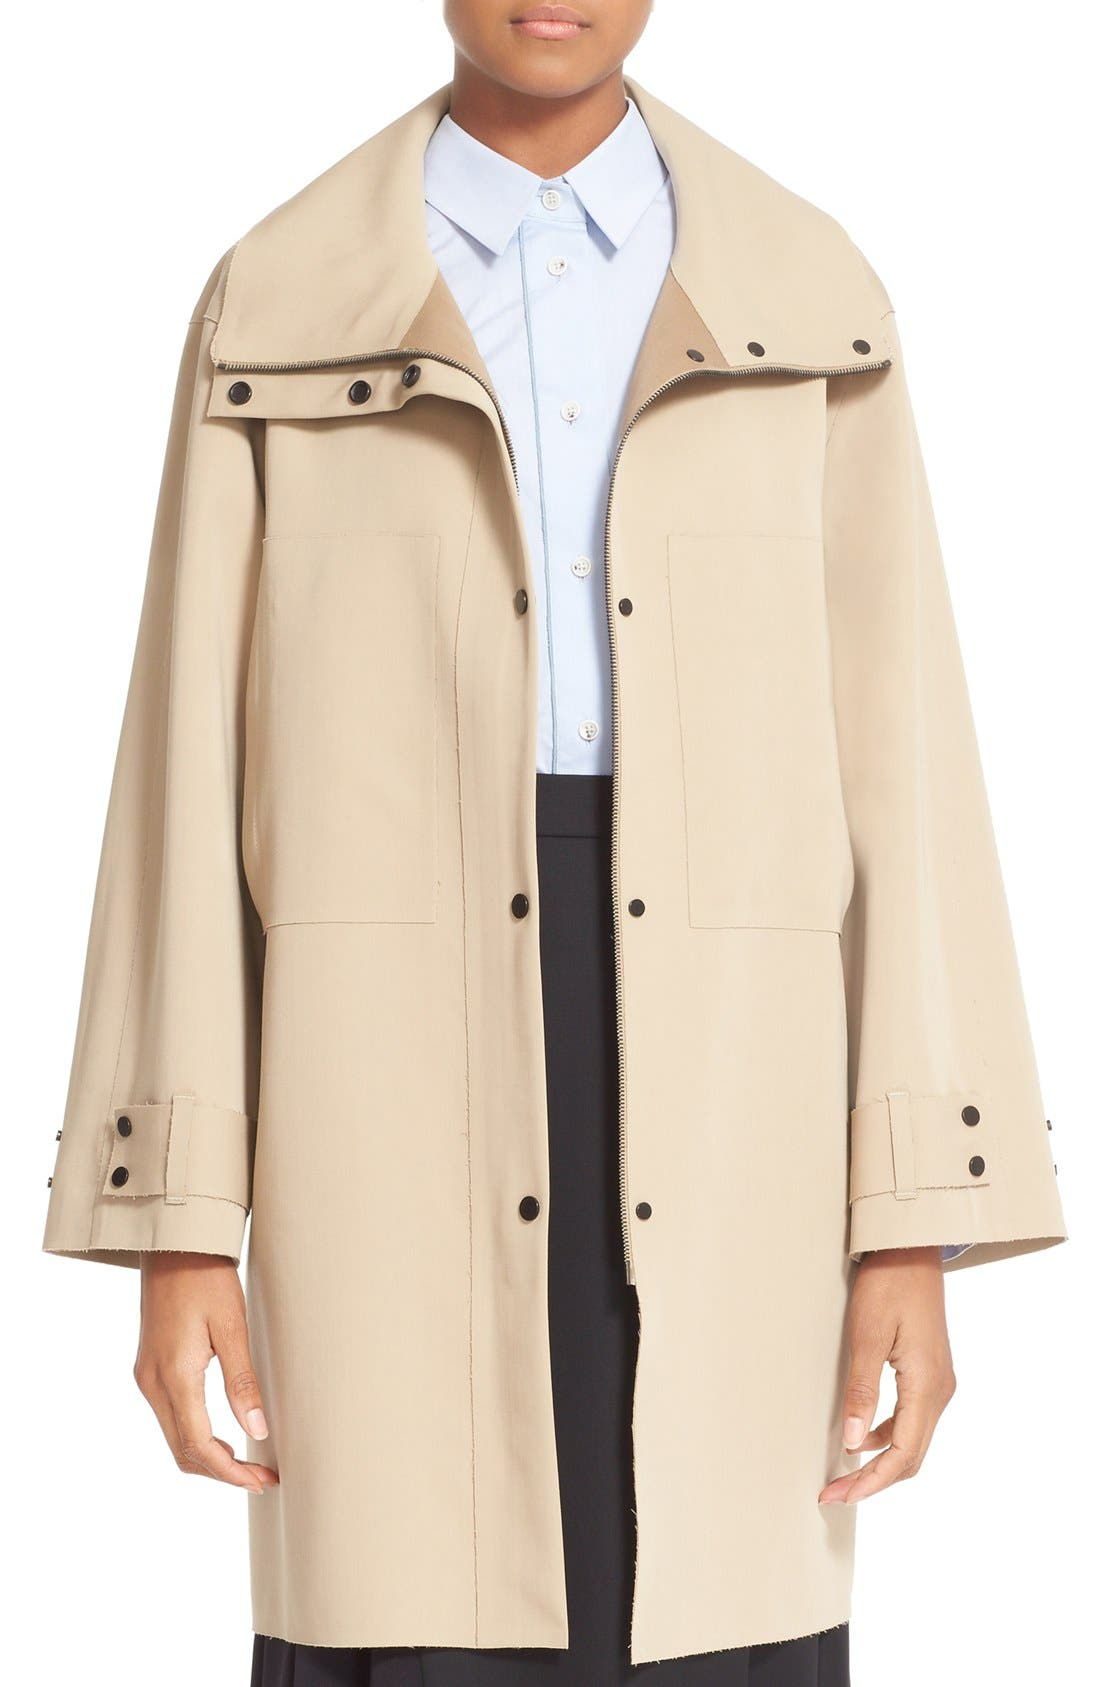 Alternate Image 1 Selected - Colovos Bonded Wool Coat